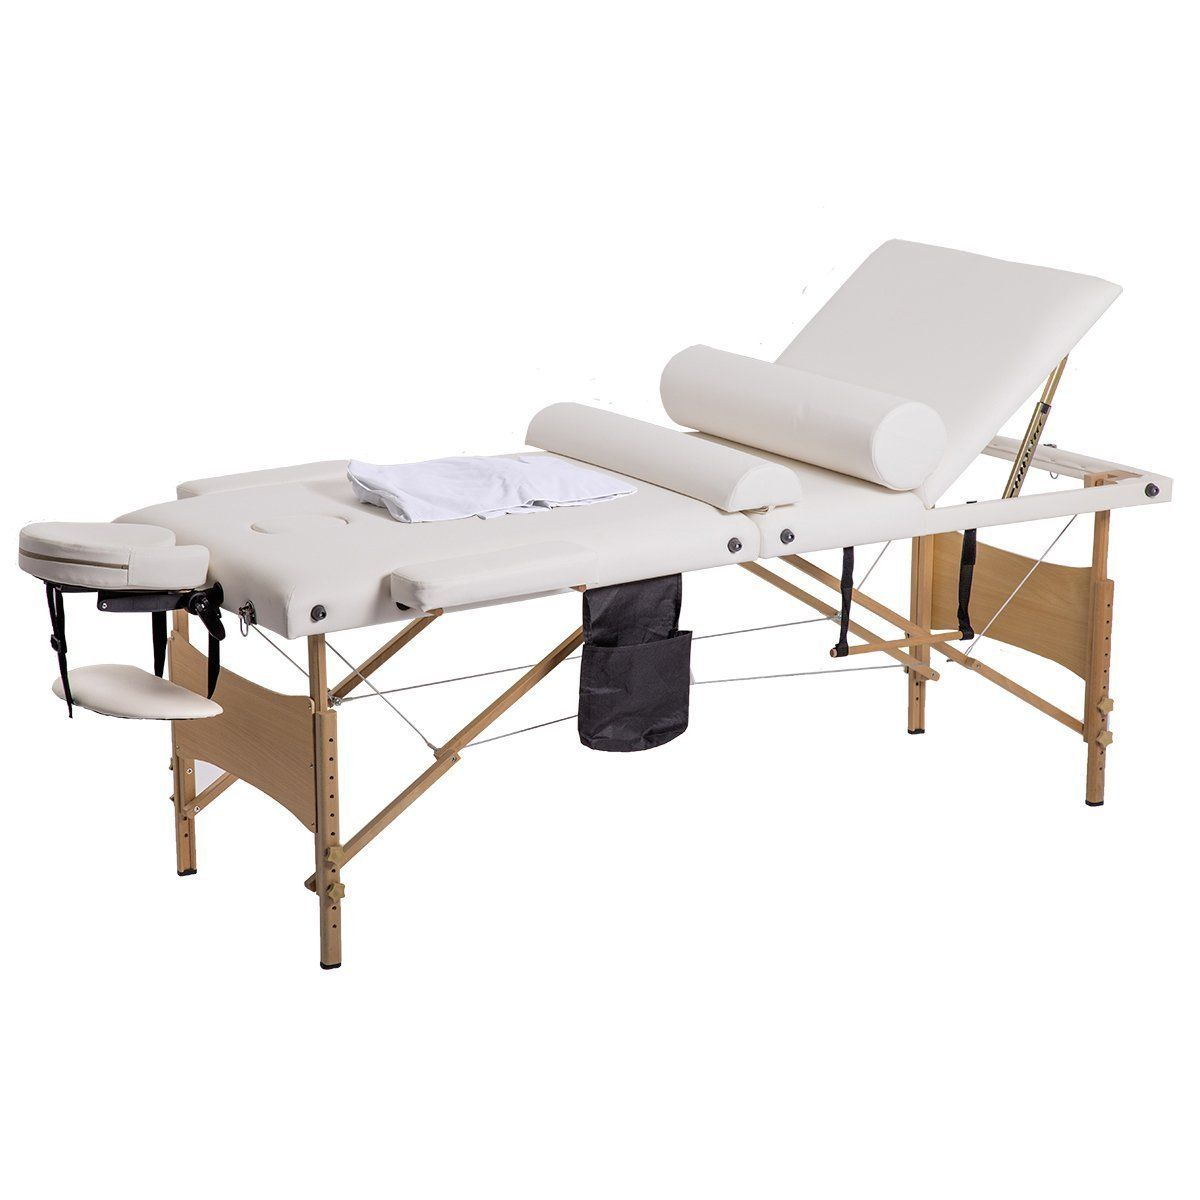 New 84u0027L 3 Fold Massage Table Portable Facial Bed W/ Sheet Bolsters Carry